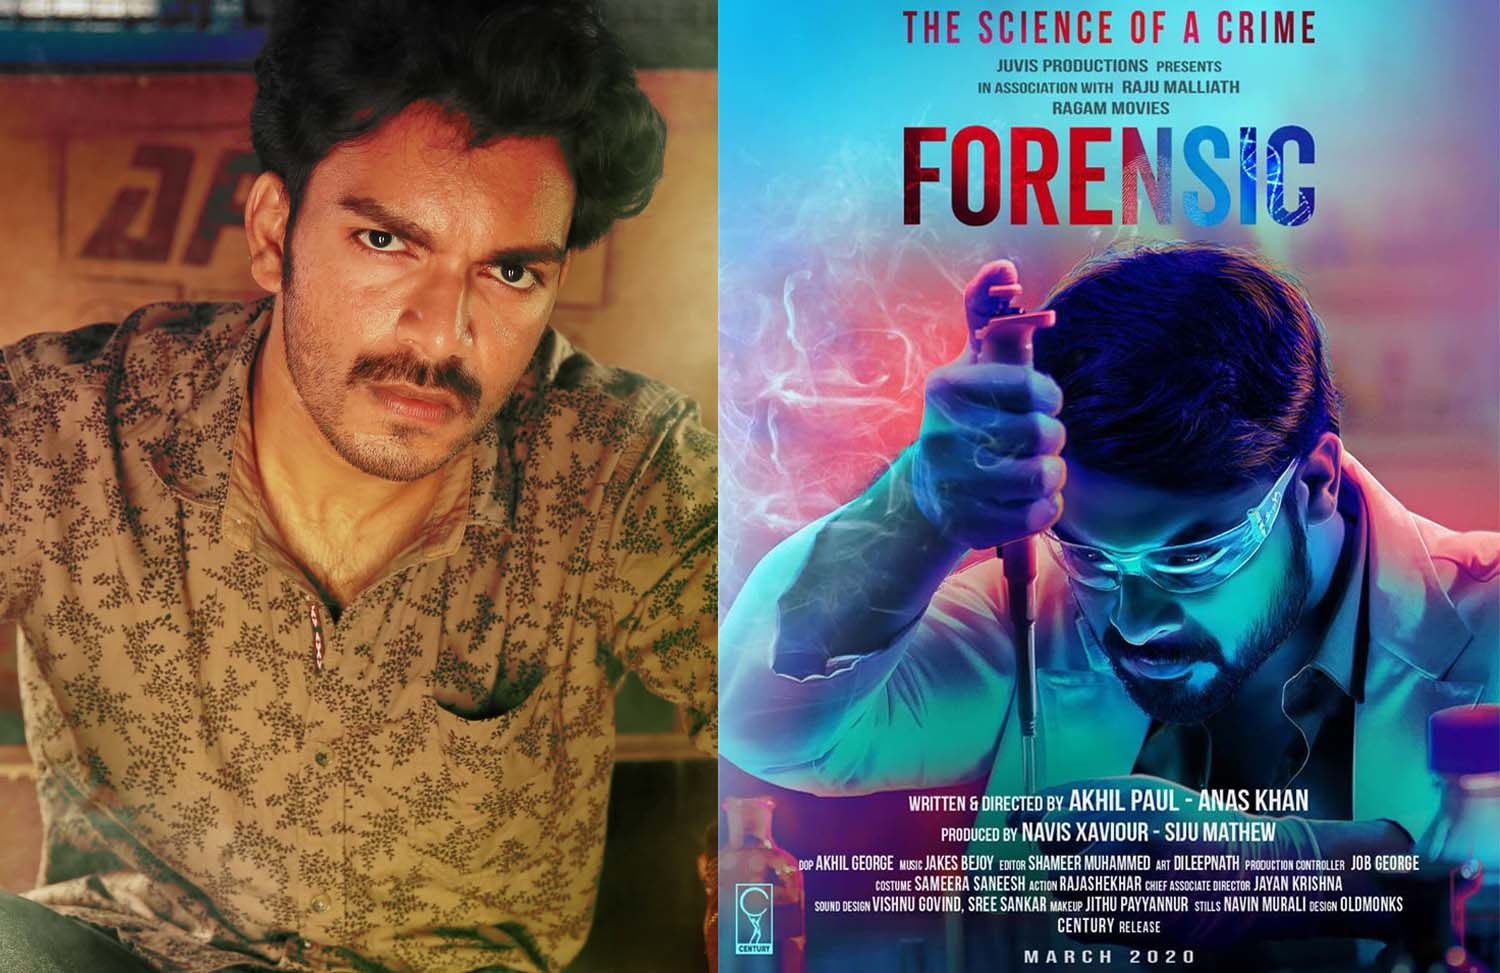 dhanesh anand, forensic, forensic malayalam movie, tovino thomas, malayalam movie 2020, latest malayalam movie, young malayalam actor, ubaid in forensic movie, forensic malayalam movie cast actor name